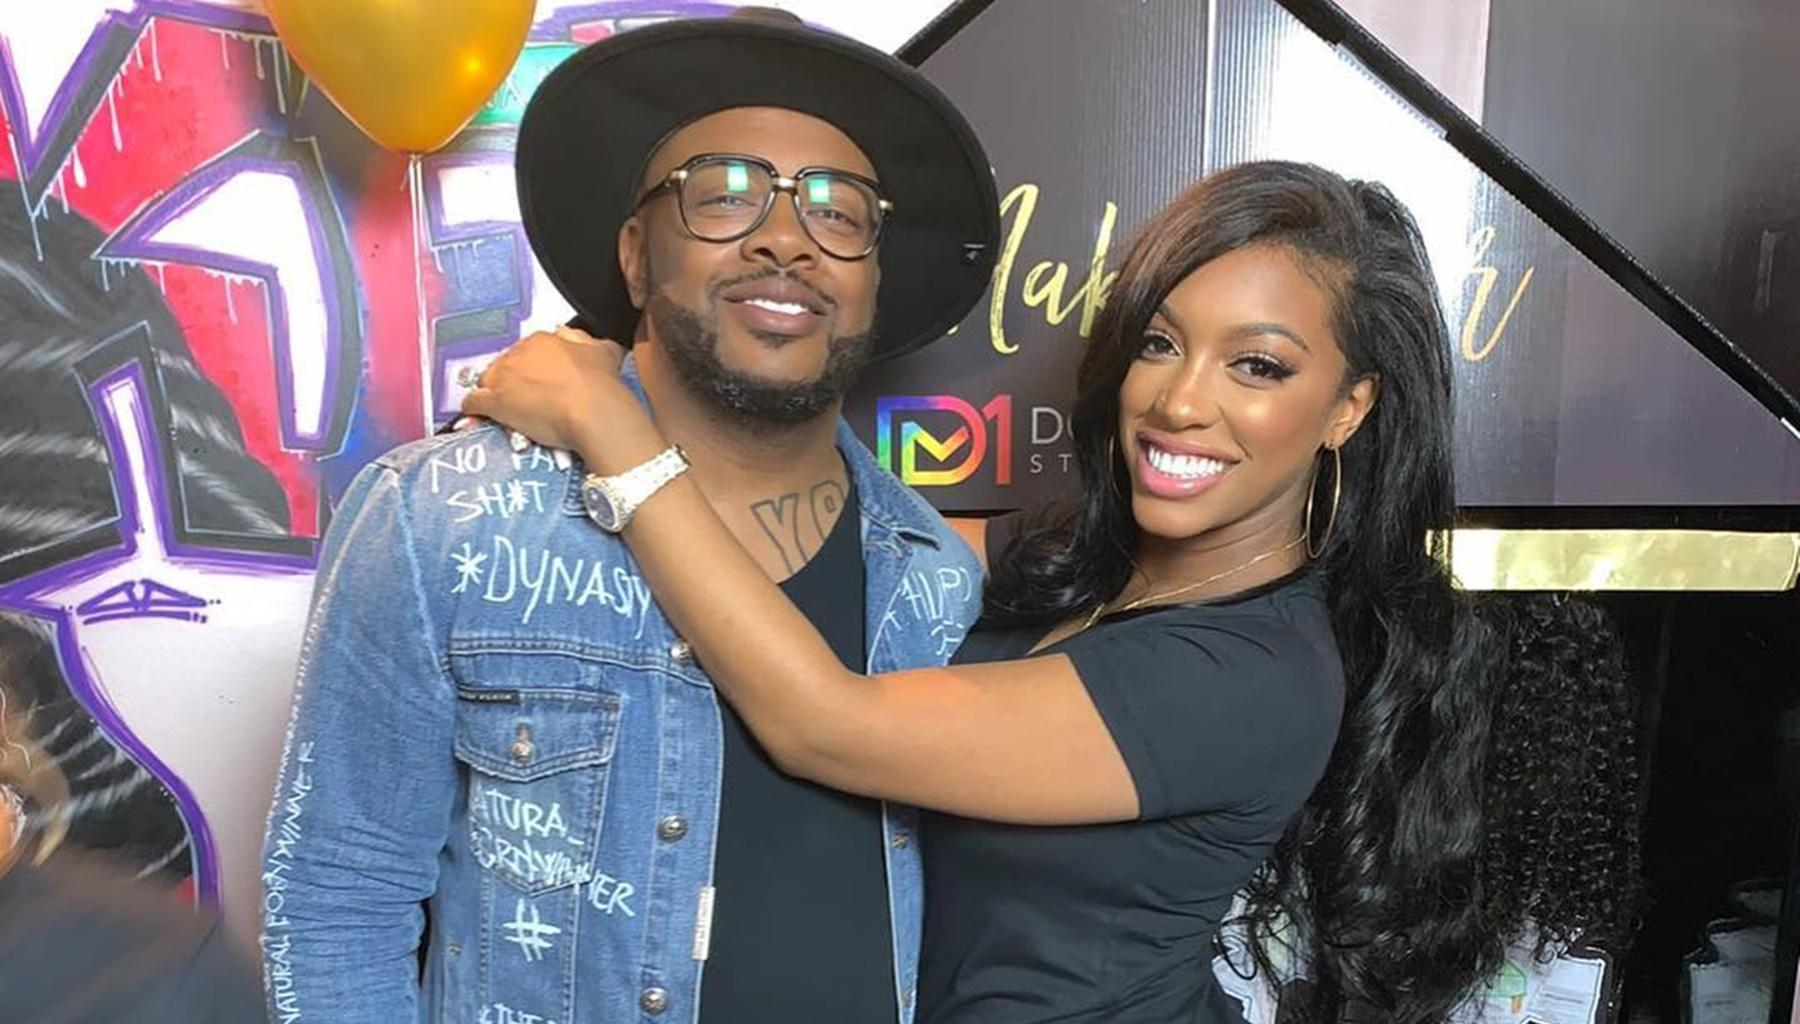 Porsha Williams Shows Off Her Mama Curves In Tight White Dress And Sends Fiery Message To The Hater Who Body Shamed Her While She Was Pregnant